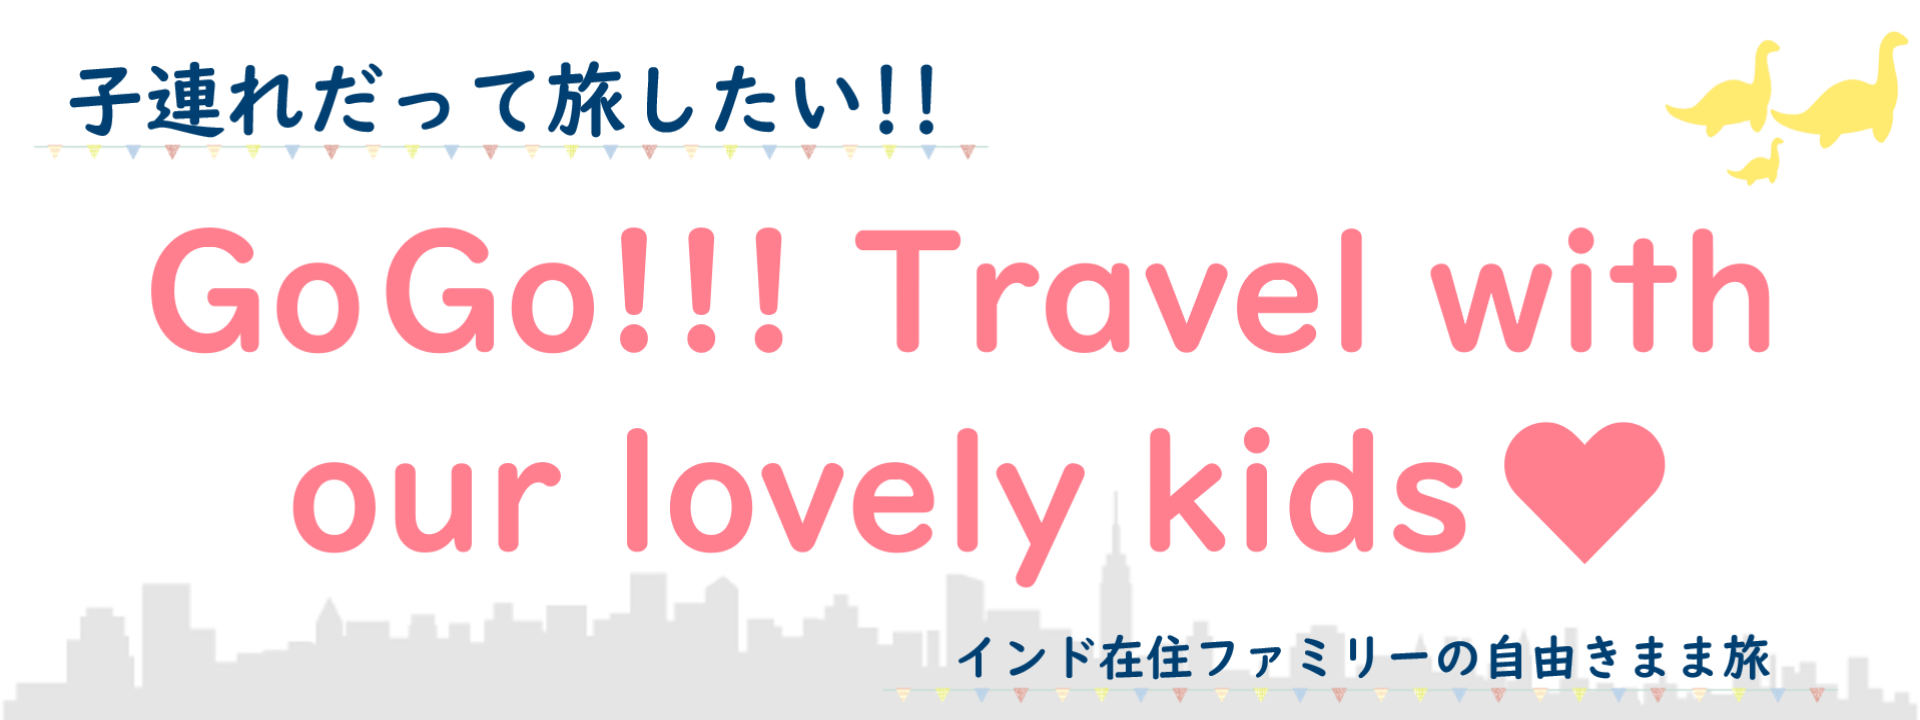 Go Go!!! Travel with our lovely kids♡